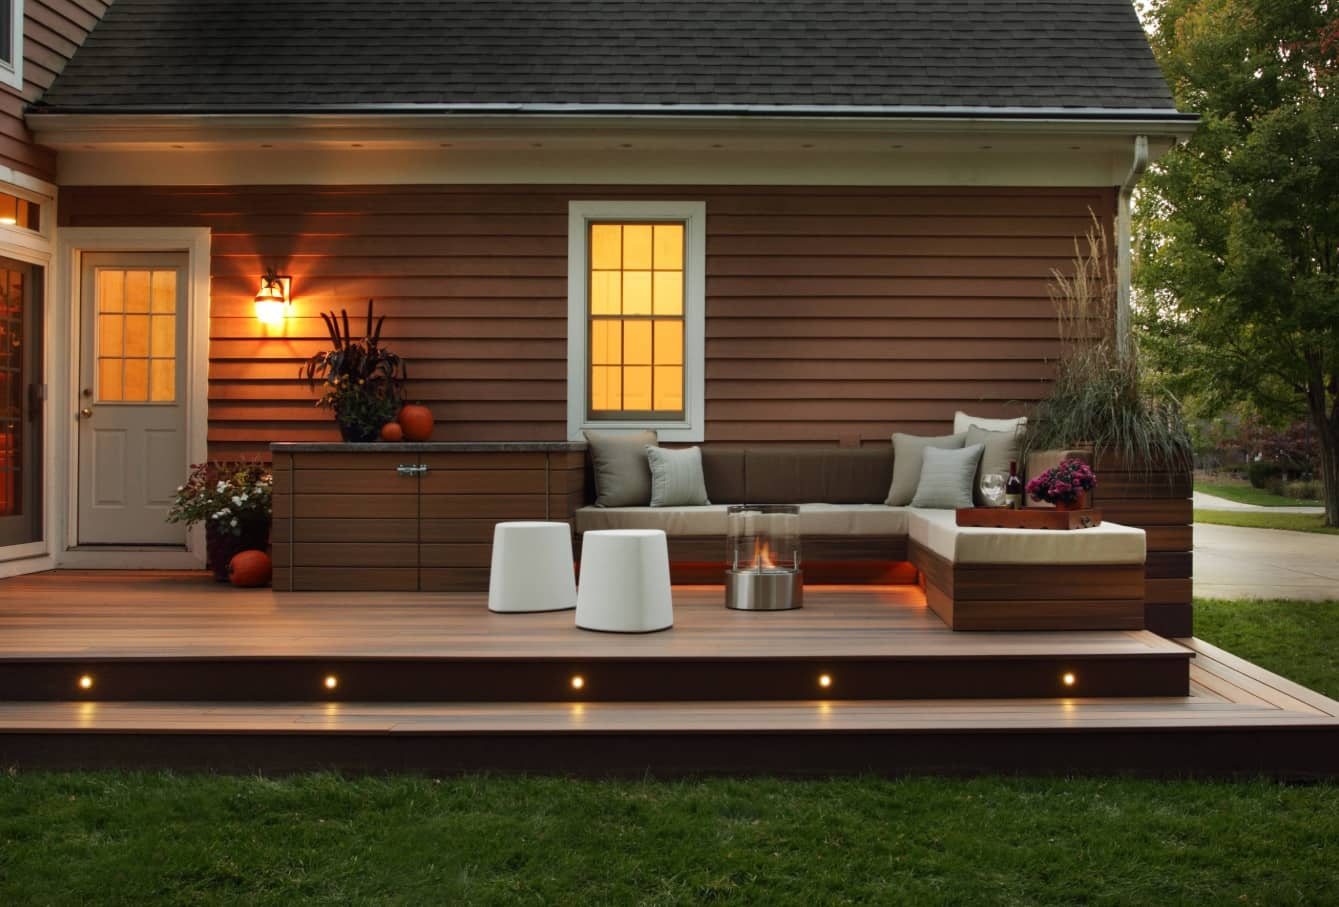 Outdoor lighting of the patio deck at the evening